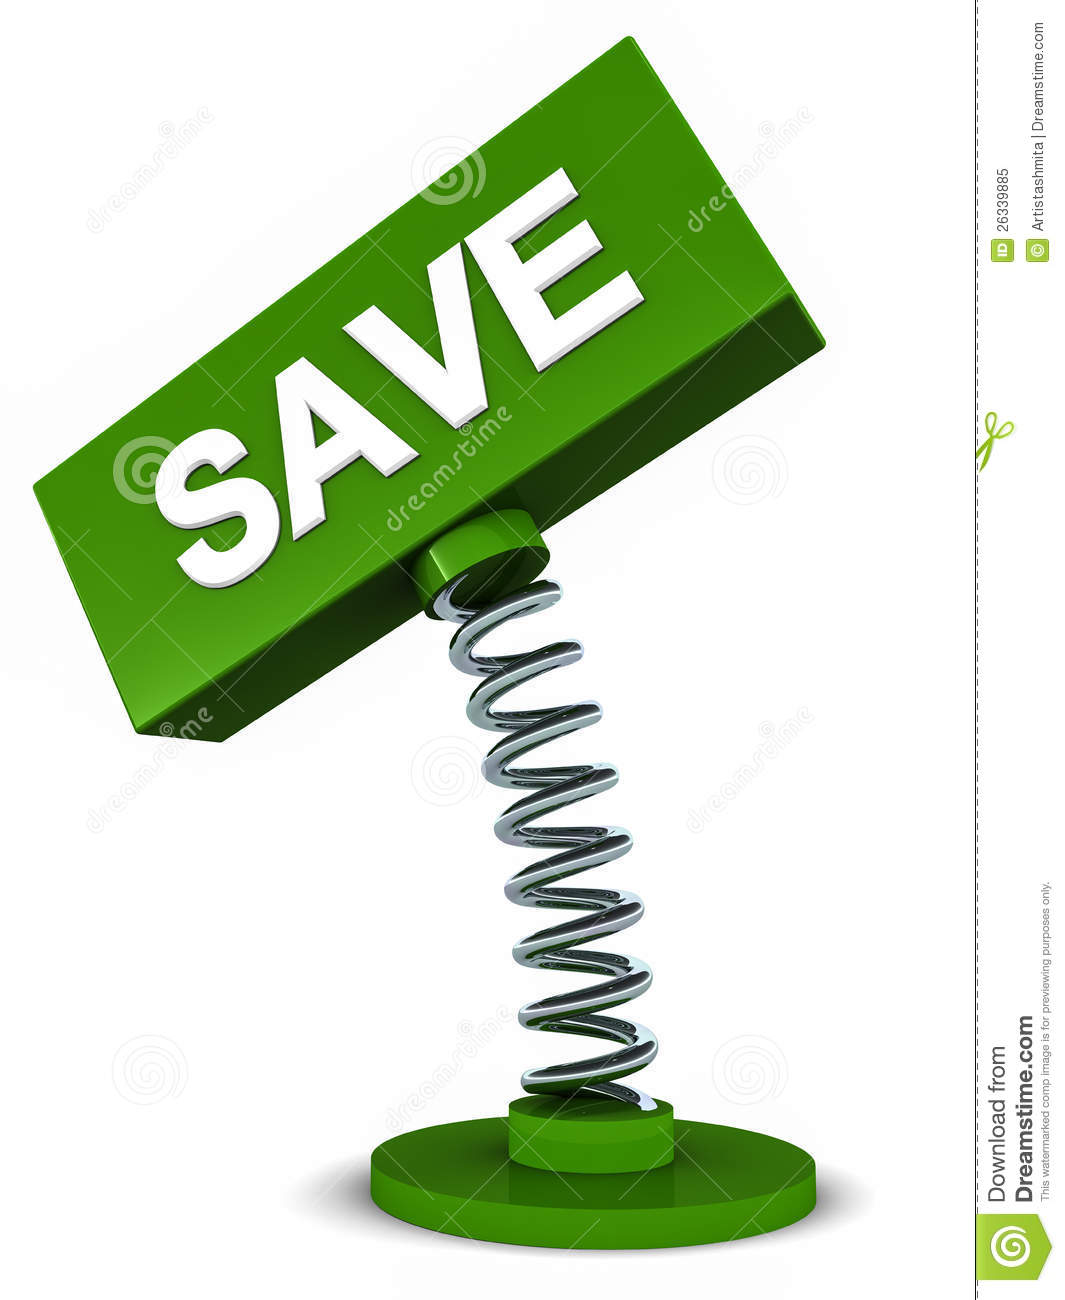 Save banner on a spring bound banner box, save money, environment or ...: www.dreamstime.com/royalty-free-stock-photo-save-banner-image26339885